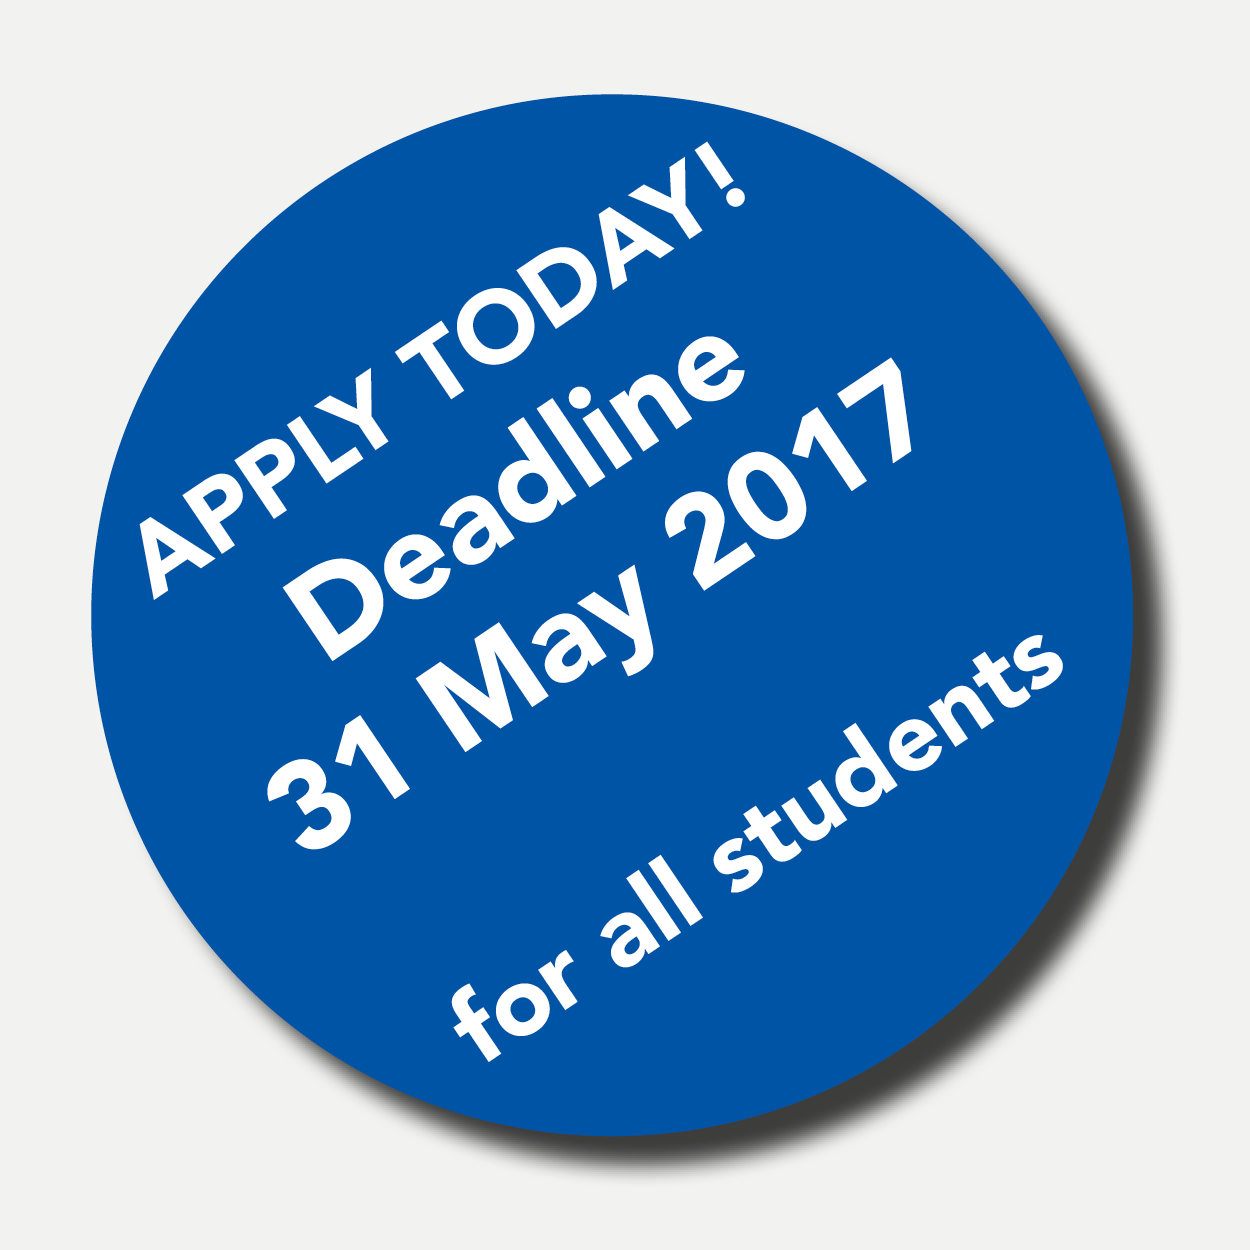 Our deadlines for EU and international students!